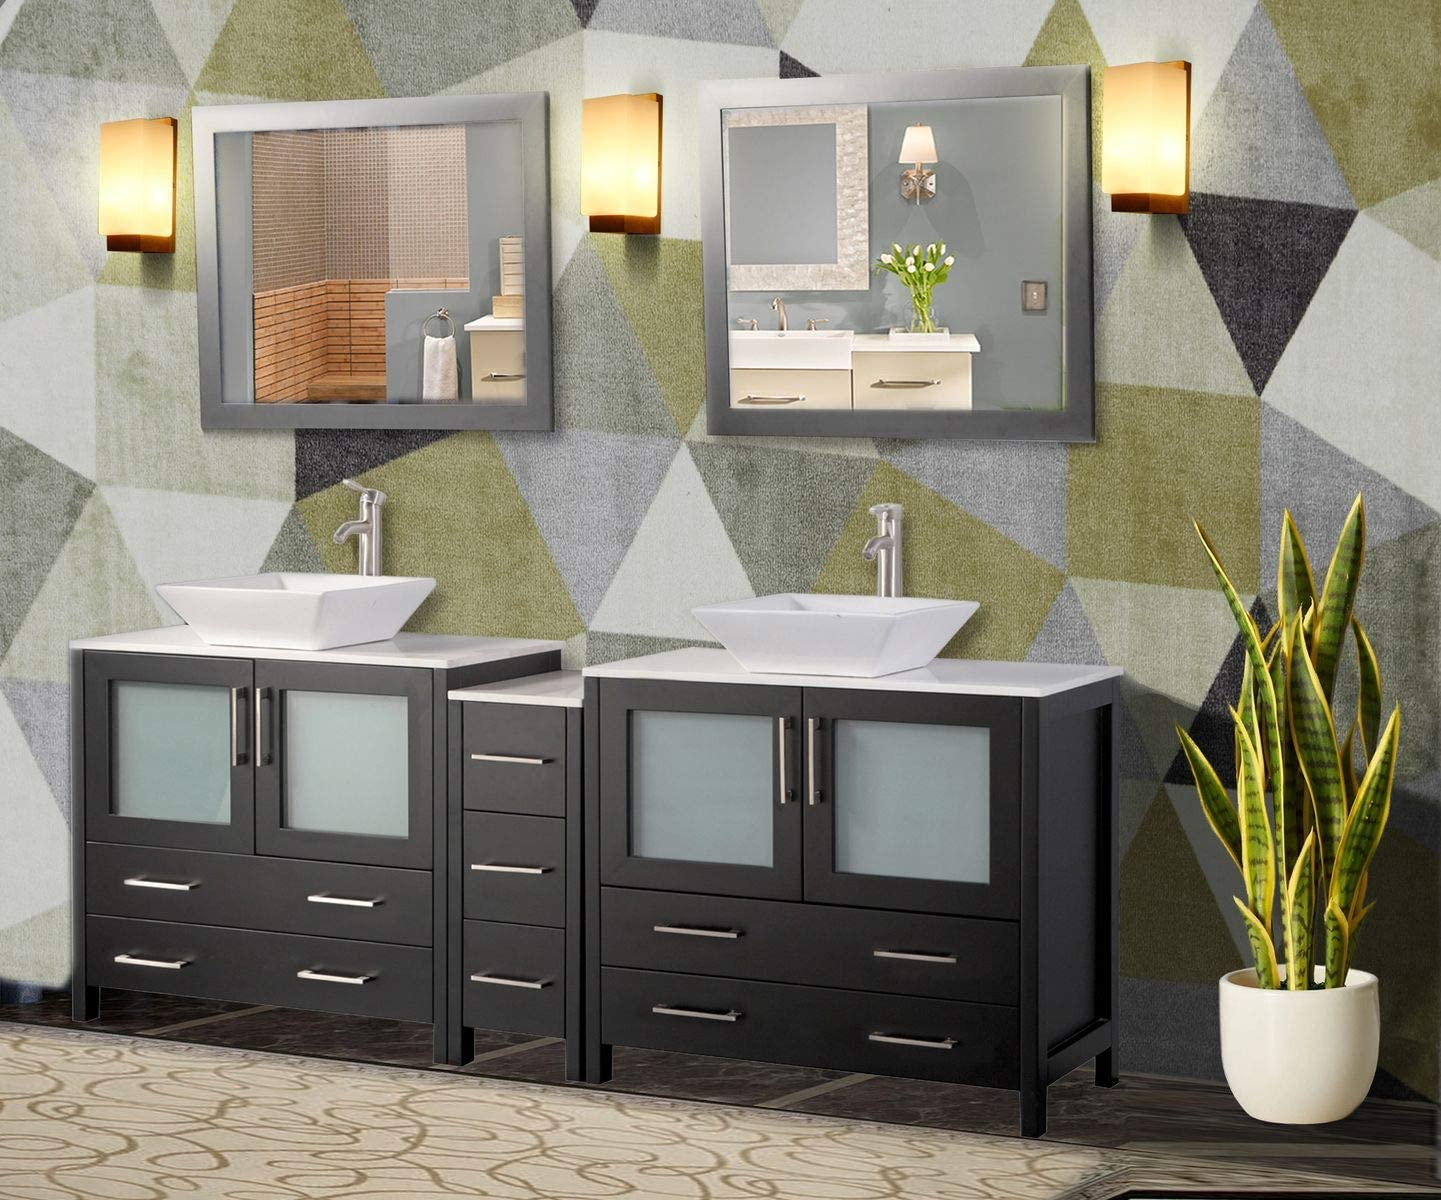 Amazon Com Vanity Art 84 Inch Double Sink Bathroom Vanity Compact Set 3 Cabinets 2 Shelves 7 Drawers Quartz Top And Ceramic Vessel Sink Bathroom Cabinet With Free Mirror Va3136 84 E Kitchen Dining